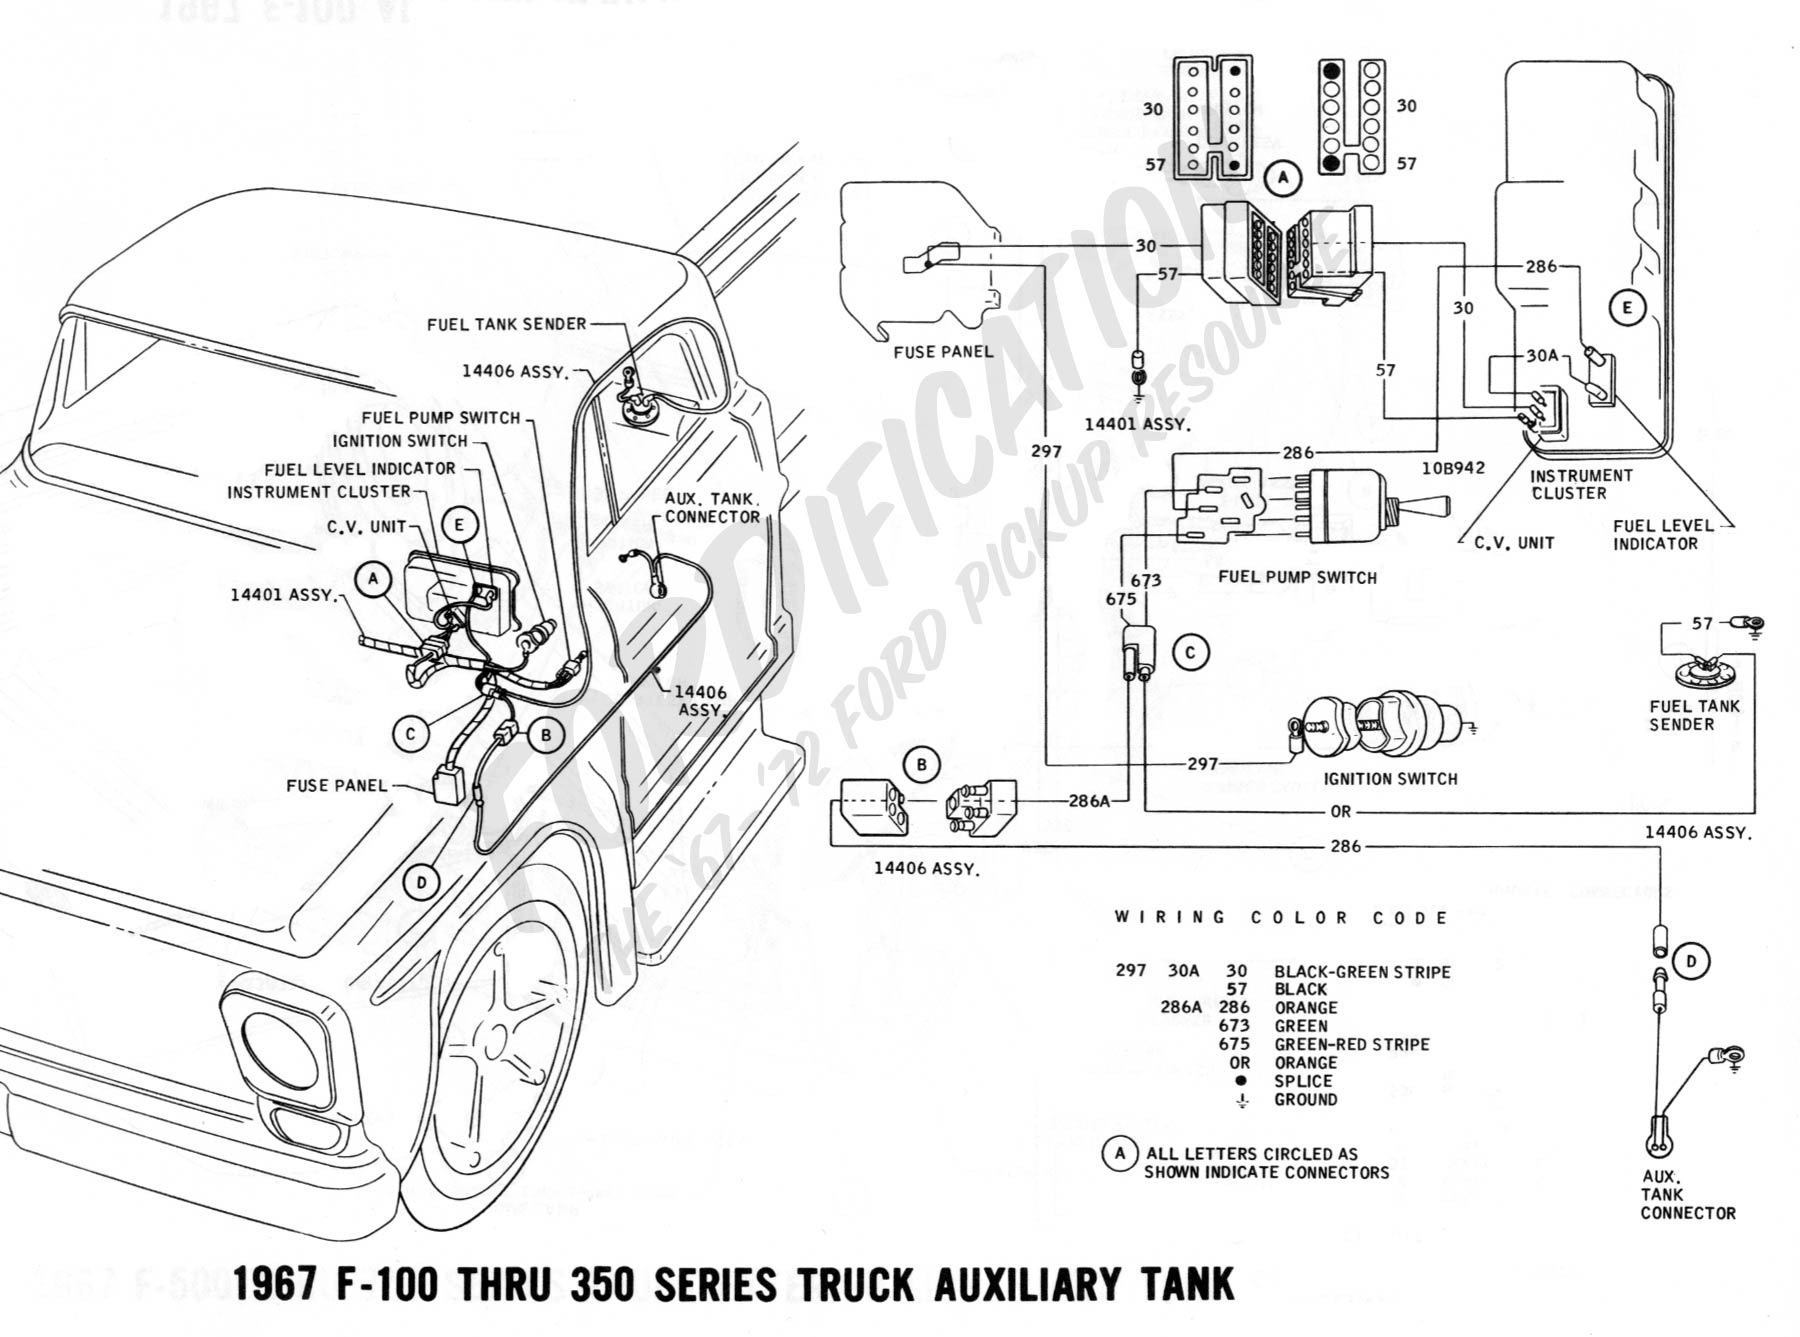 Dual Tank Fuel System Diagram Furthermore 1996 Ford F 150 ...  L F Wiring Diagram on